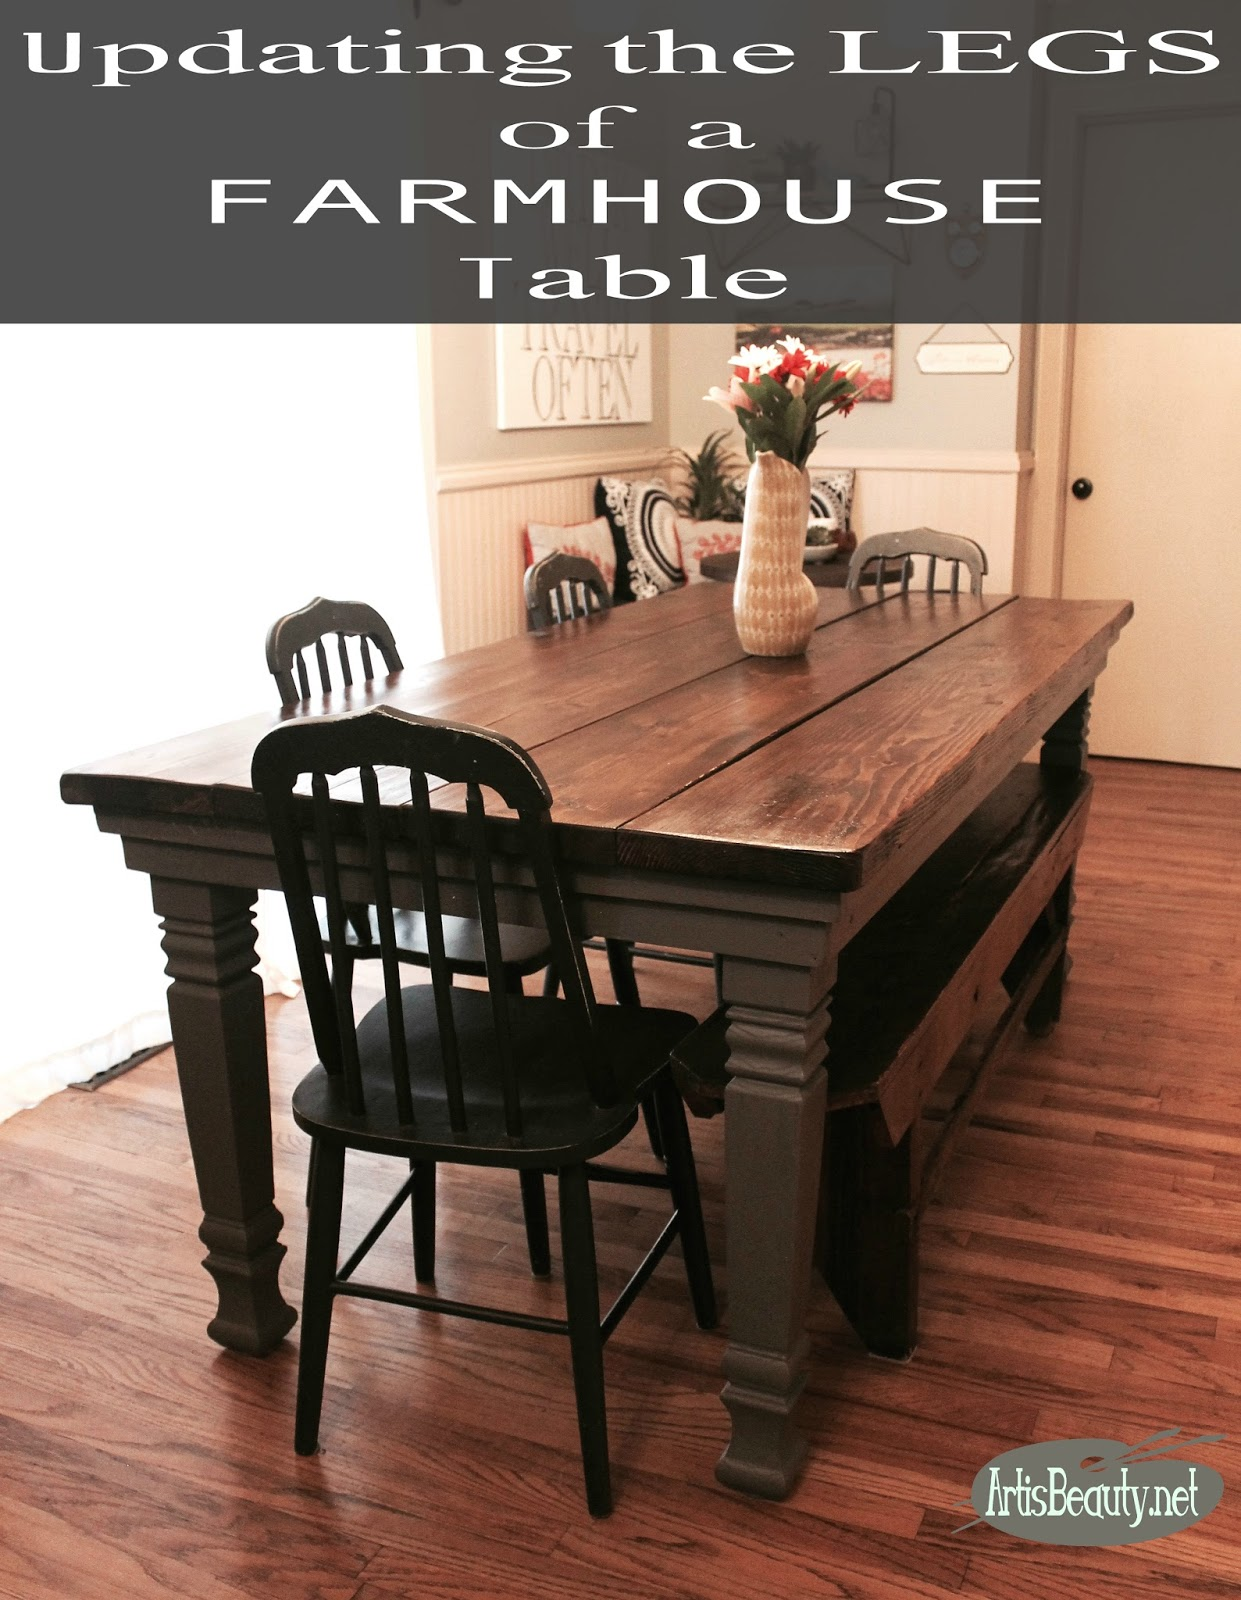 Ideal Updating the Legs of my DIY Build it Yourself FARMHOUSE Table